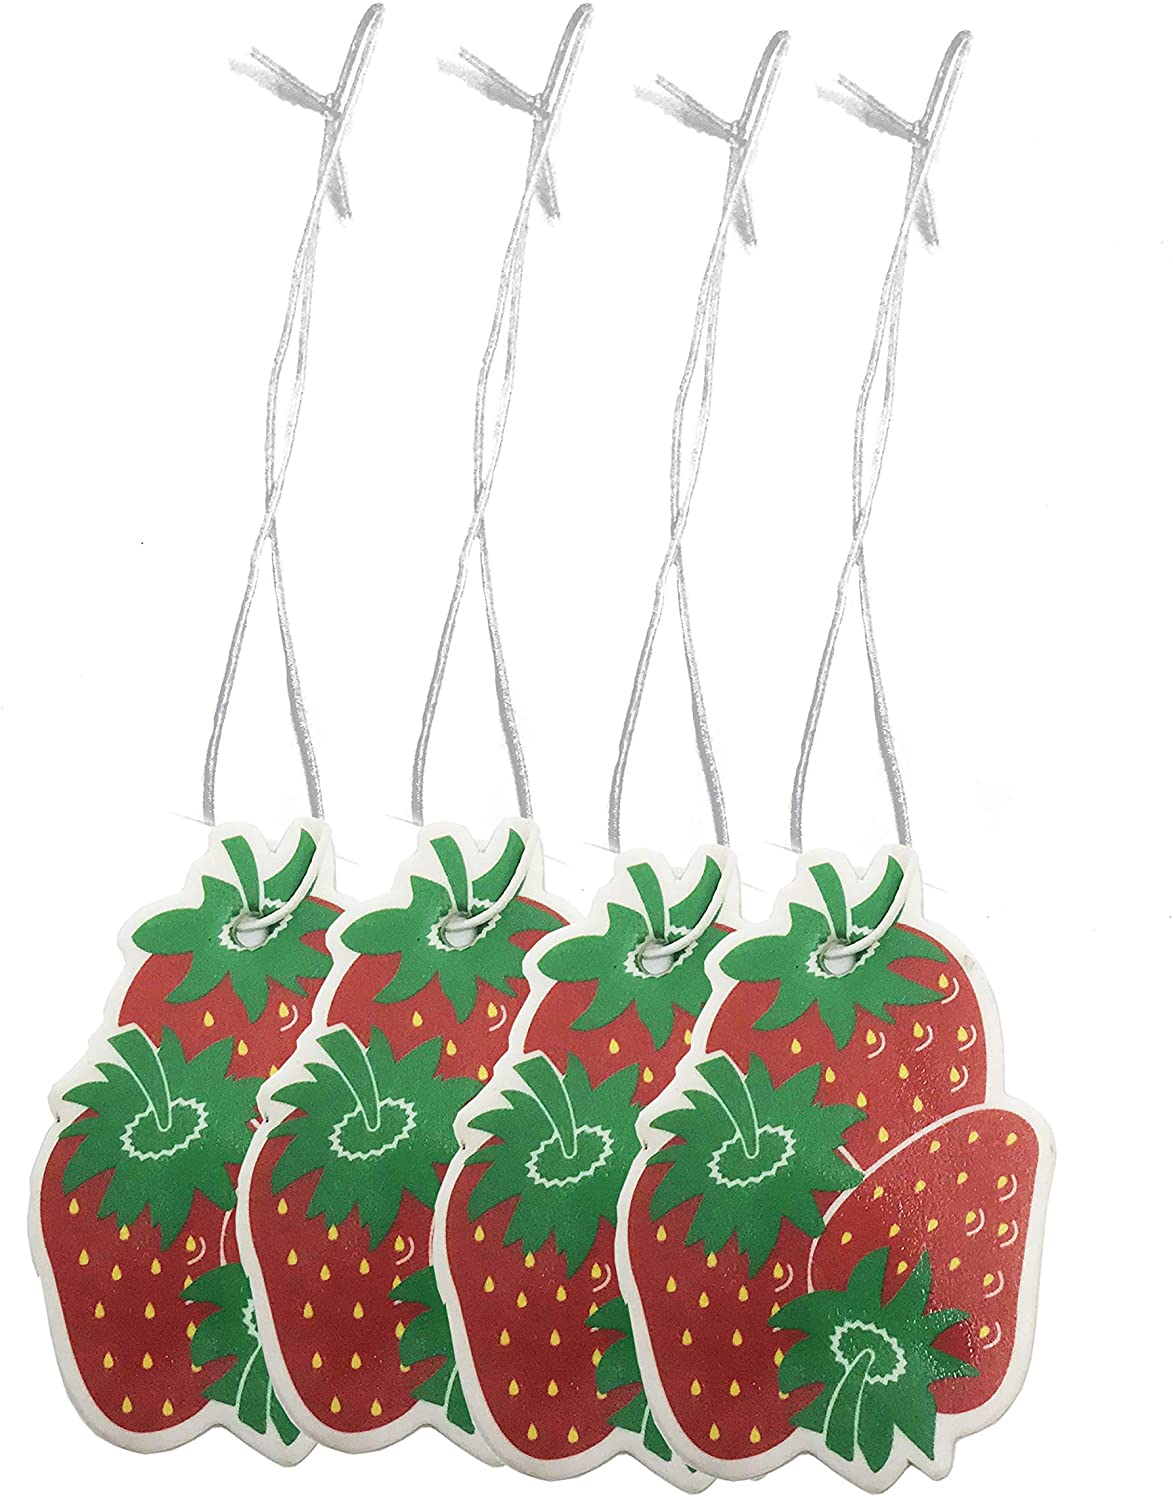 Sonoran Souvenirs Strawberry Air Freshener for Car Fresh Strwaberry Scented Automotive Accessory (4pcs/lot)